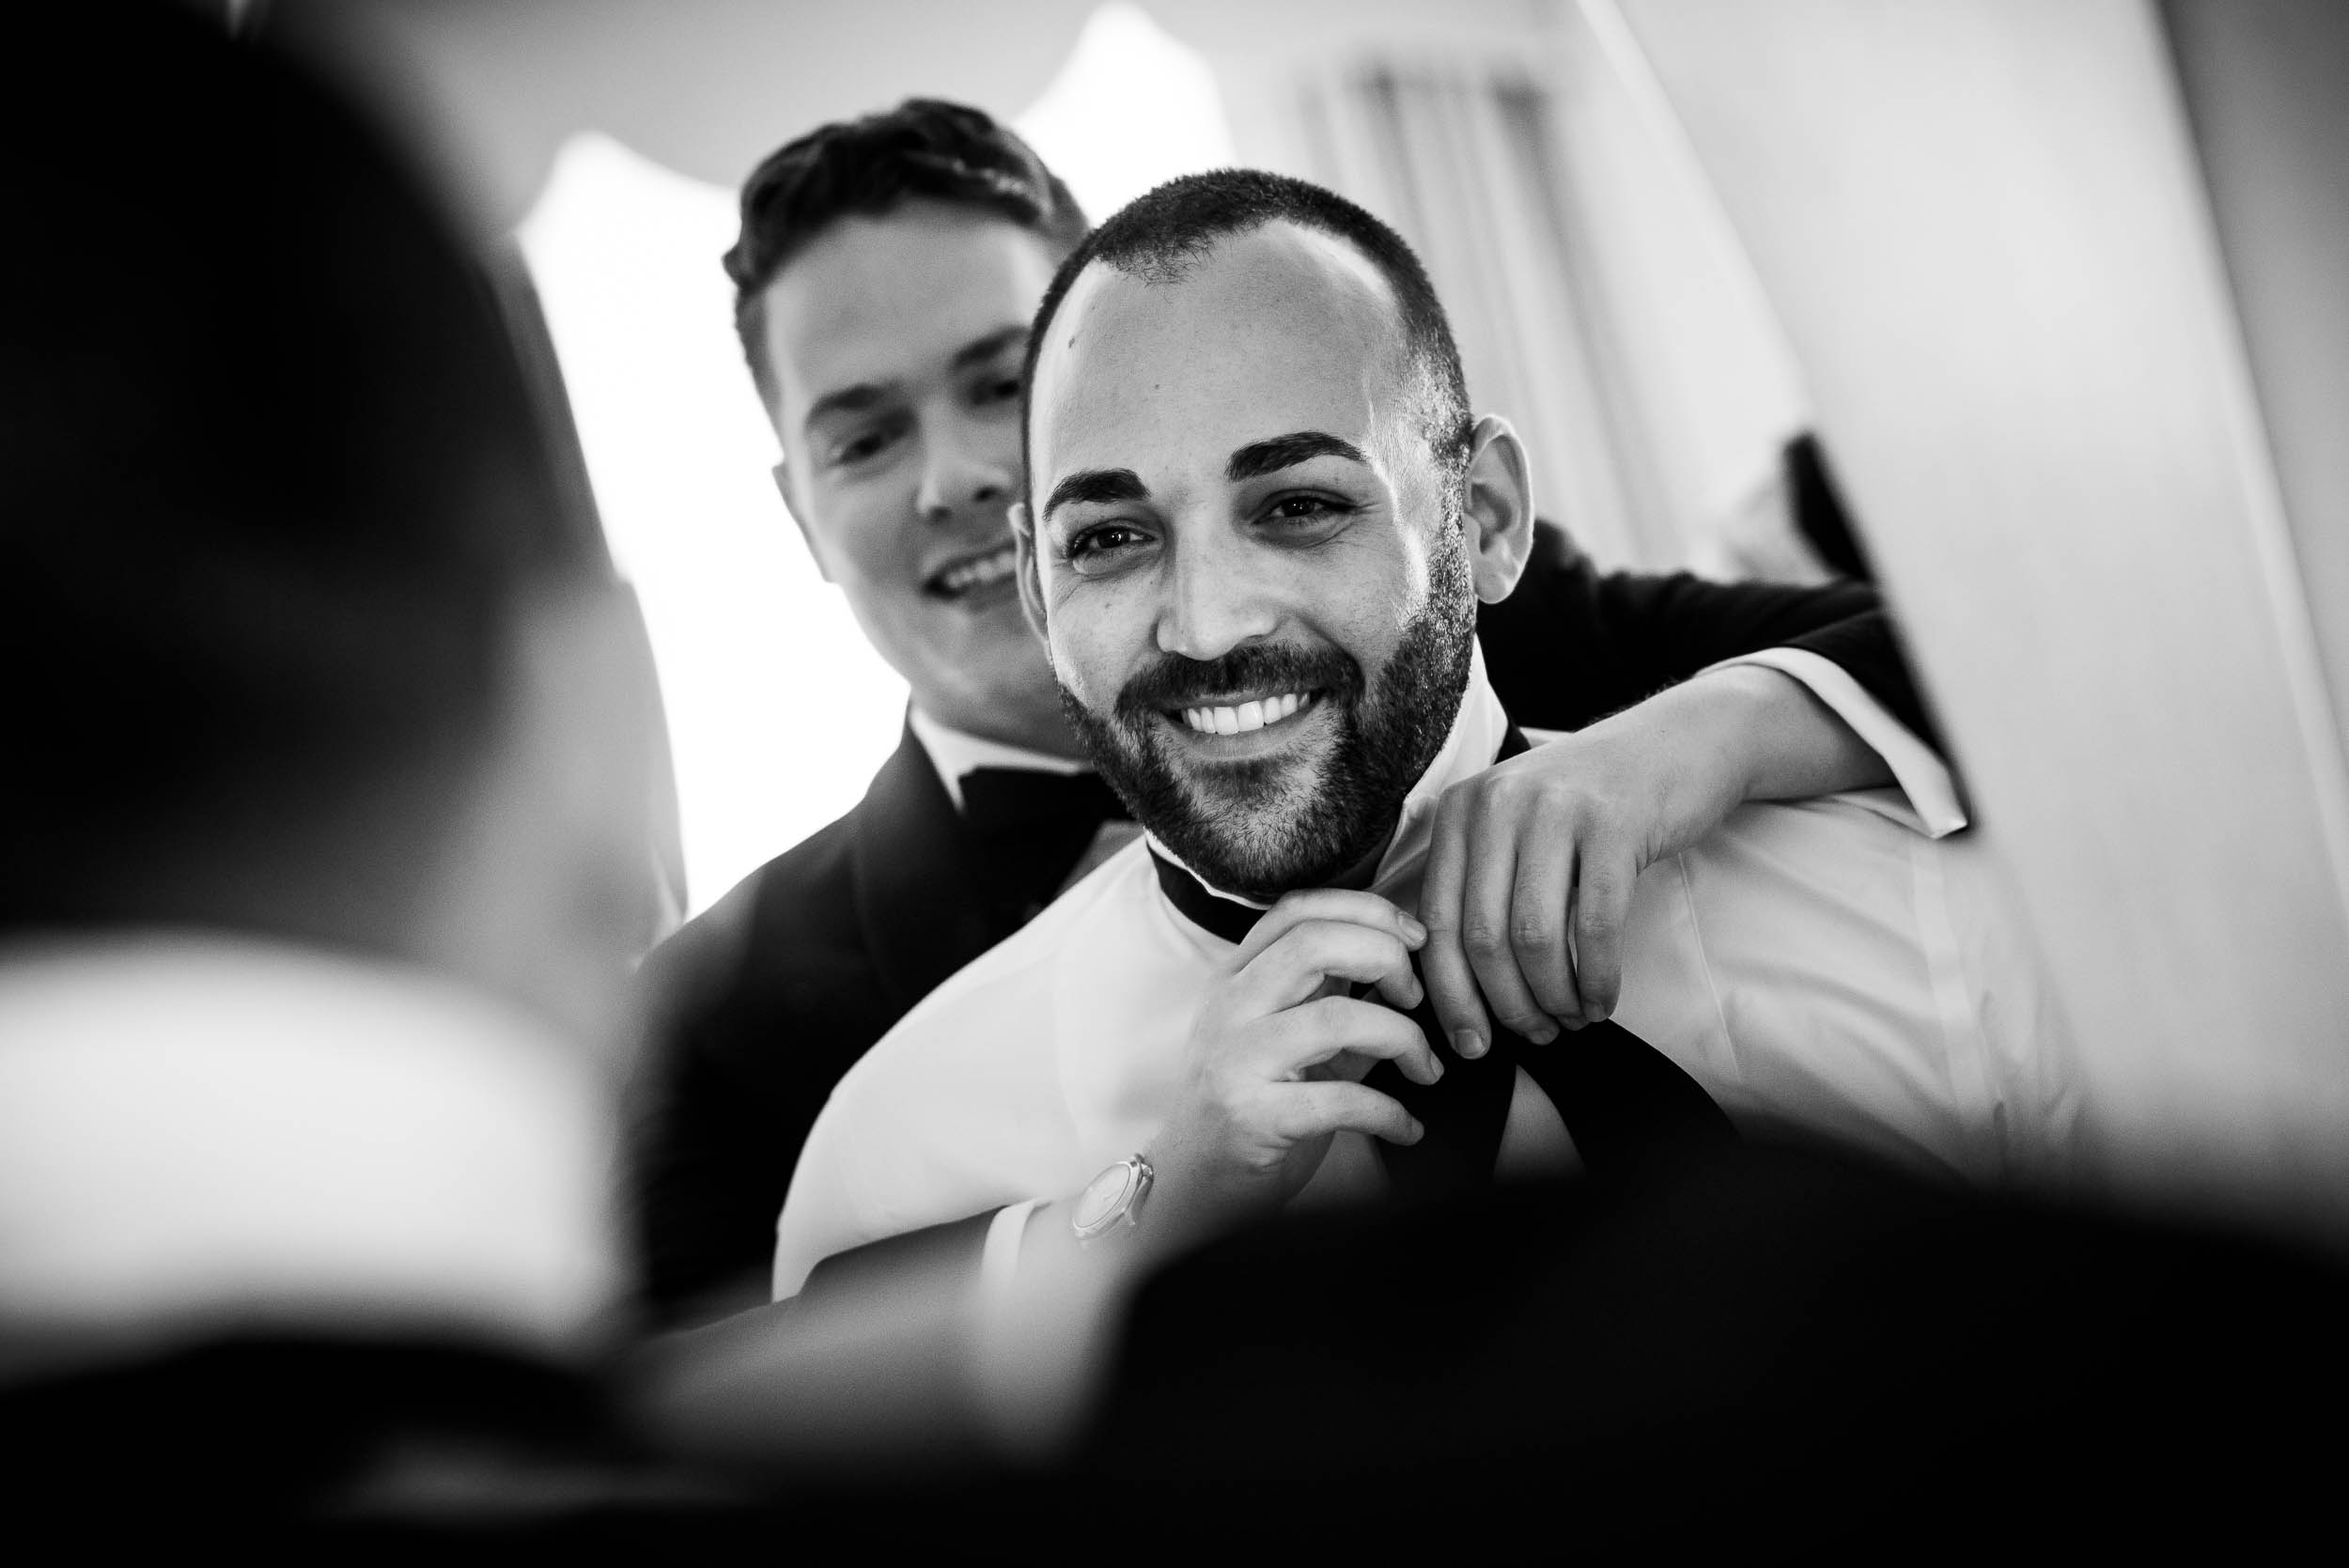 Grooms getting ready for luxurious fall wedding at the Chicago Symphony Center captured by J. Brown Photography. See more wedding ideas at jbrownphotography.com!